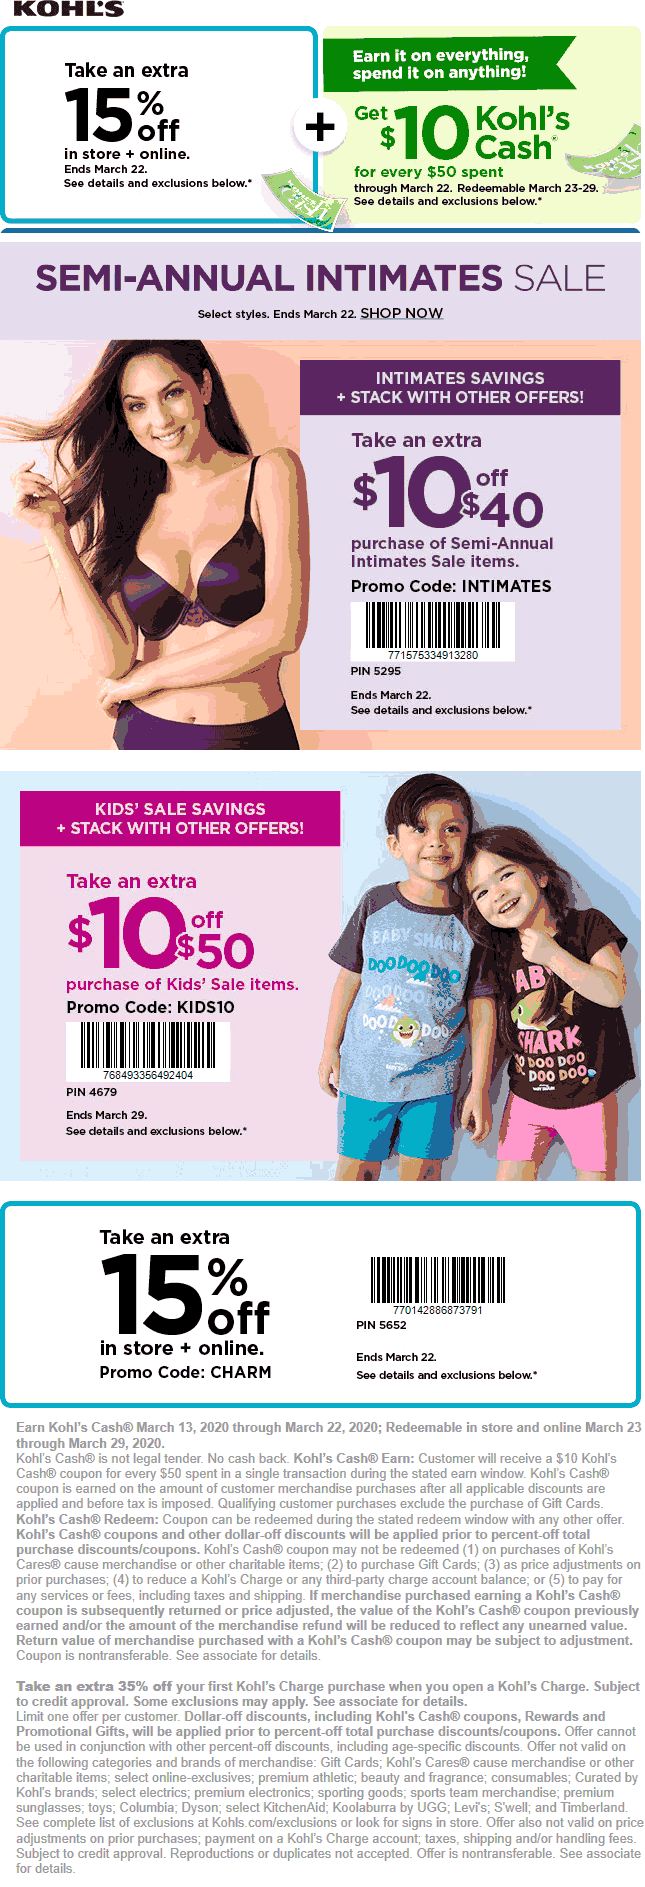 Kohls coupons & promo code for [September 2020]